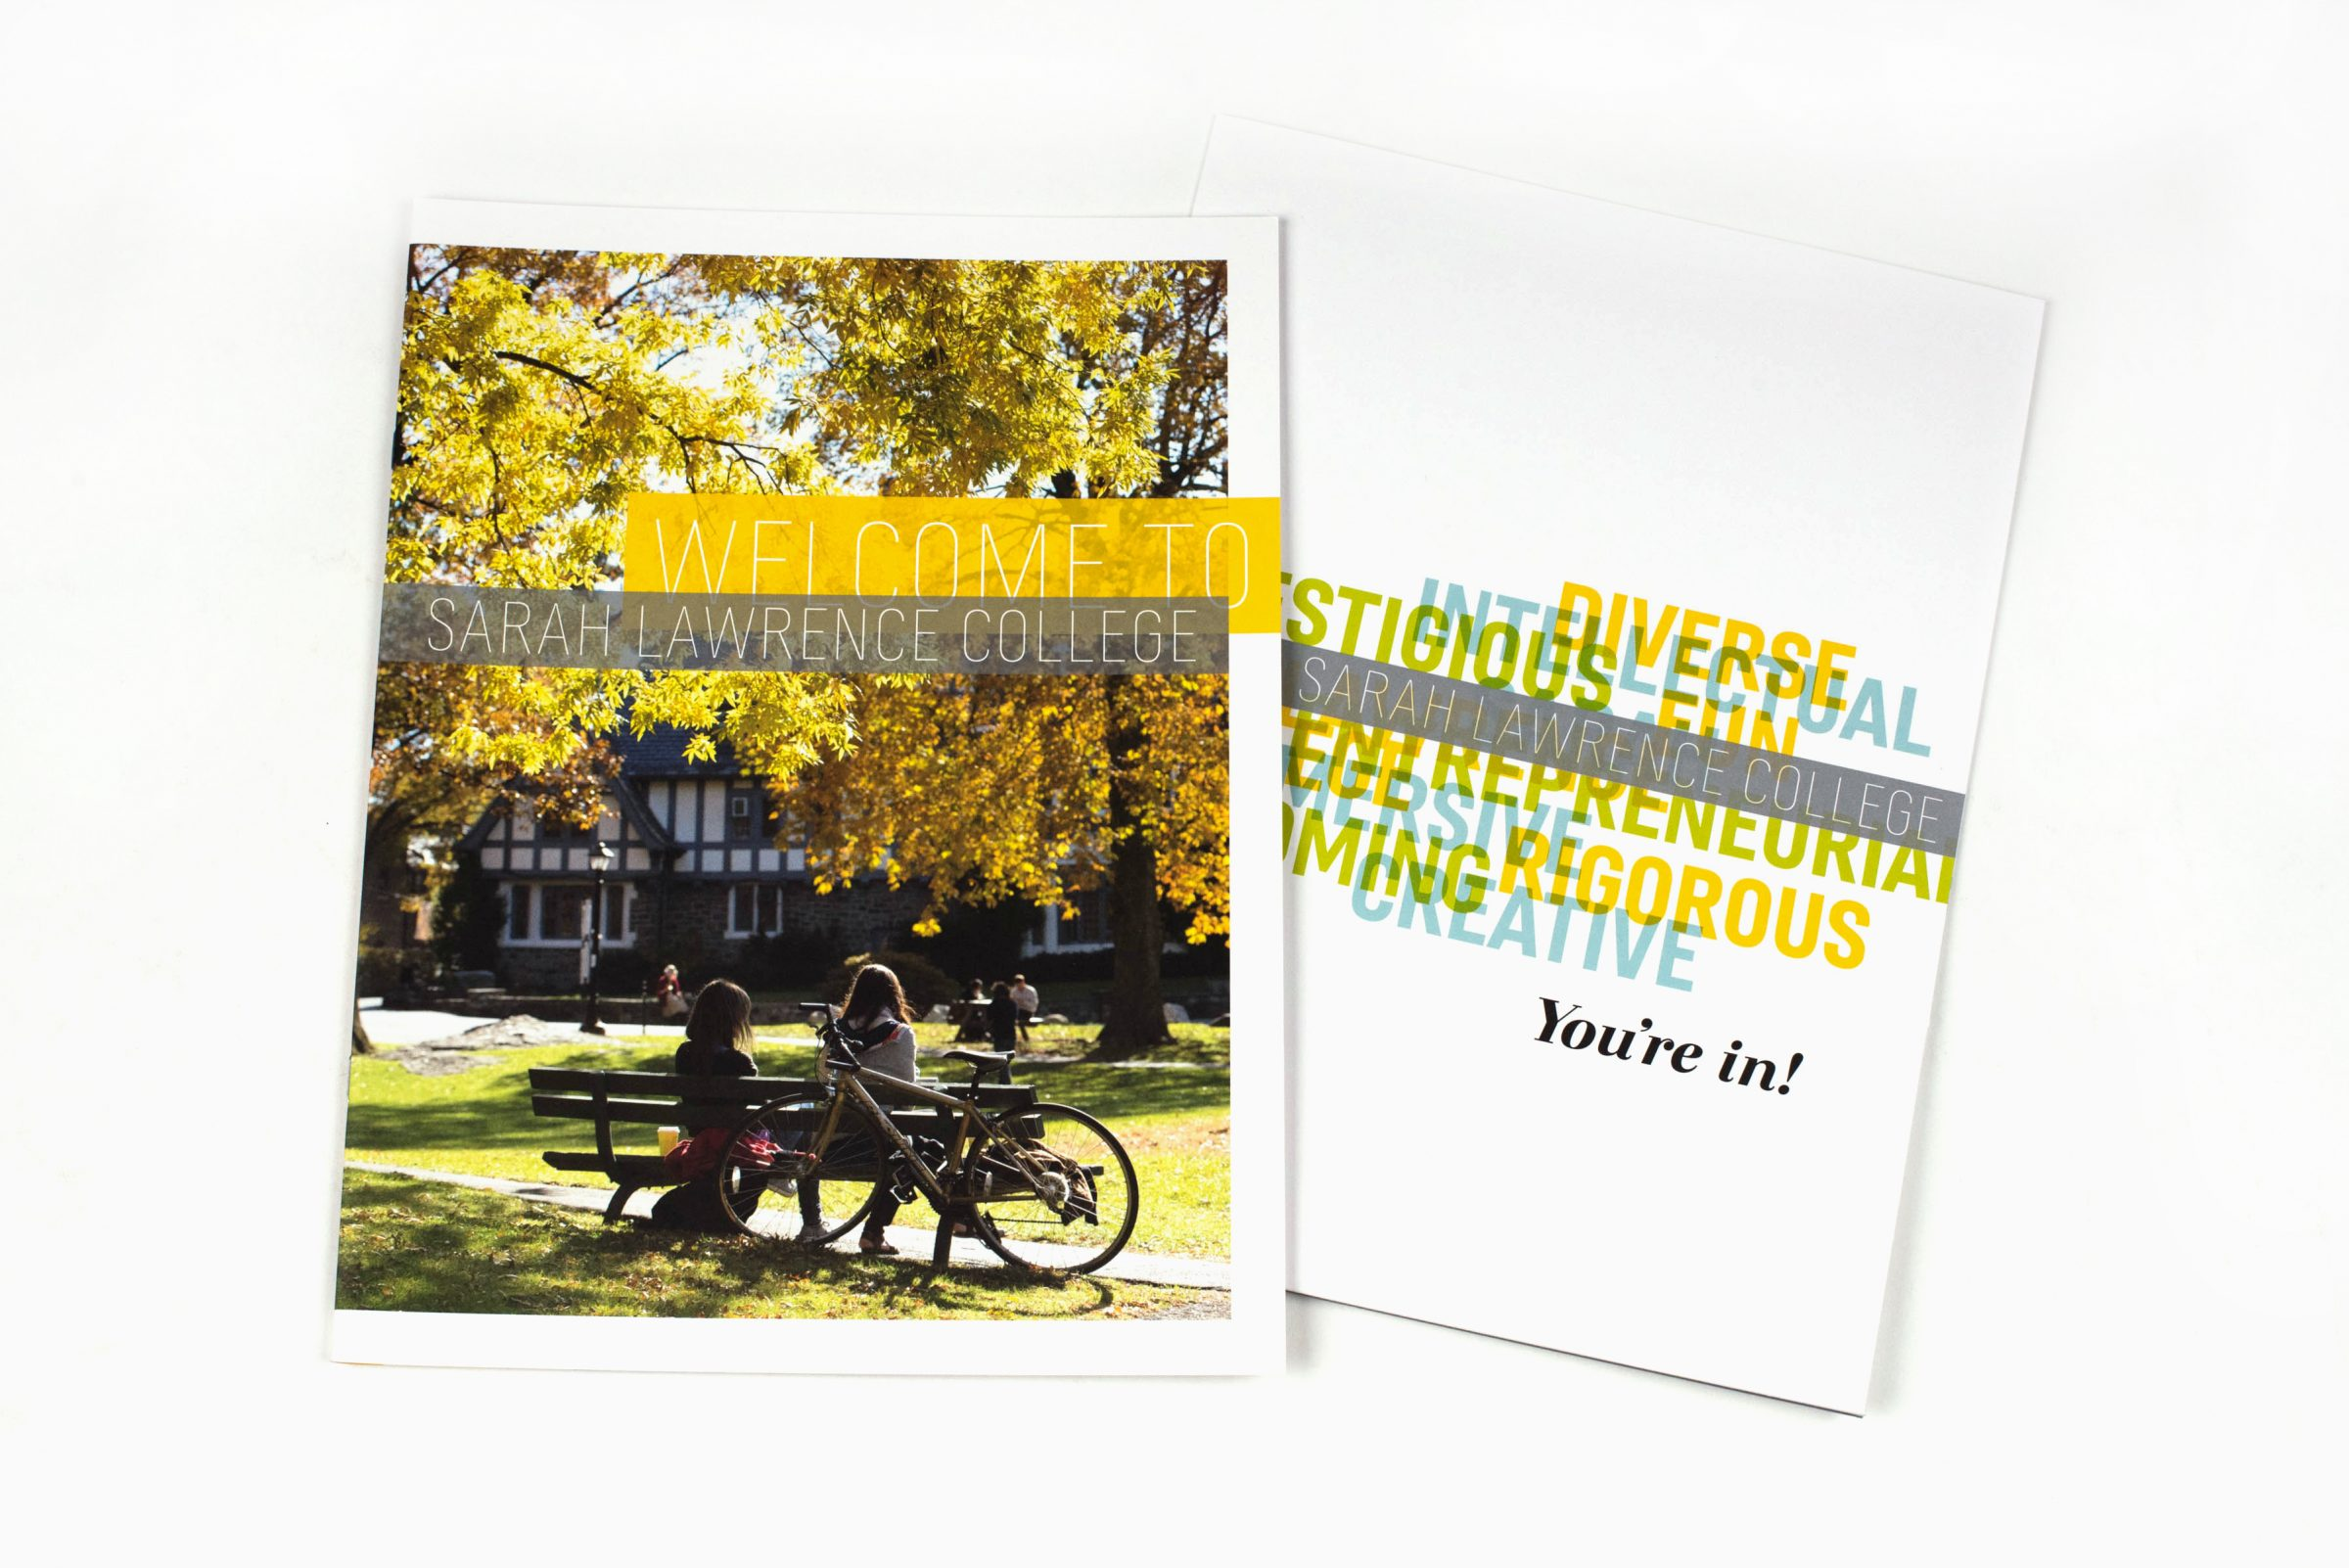 Sarah Lawrence College motivational brochure cover: Welcome to Sarah Lawrence College